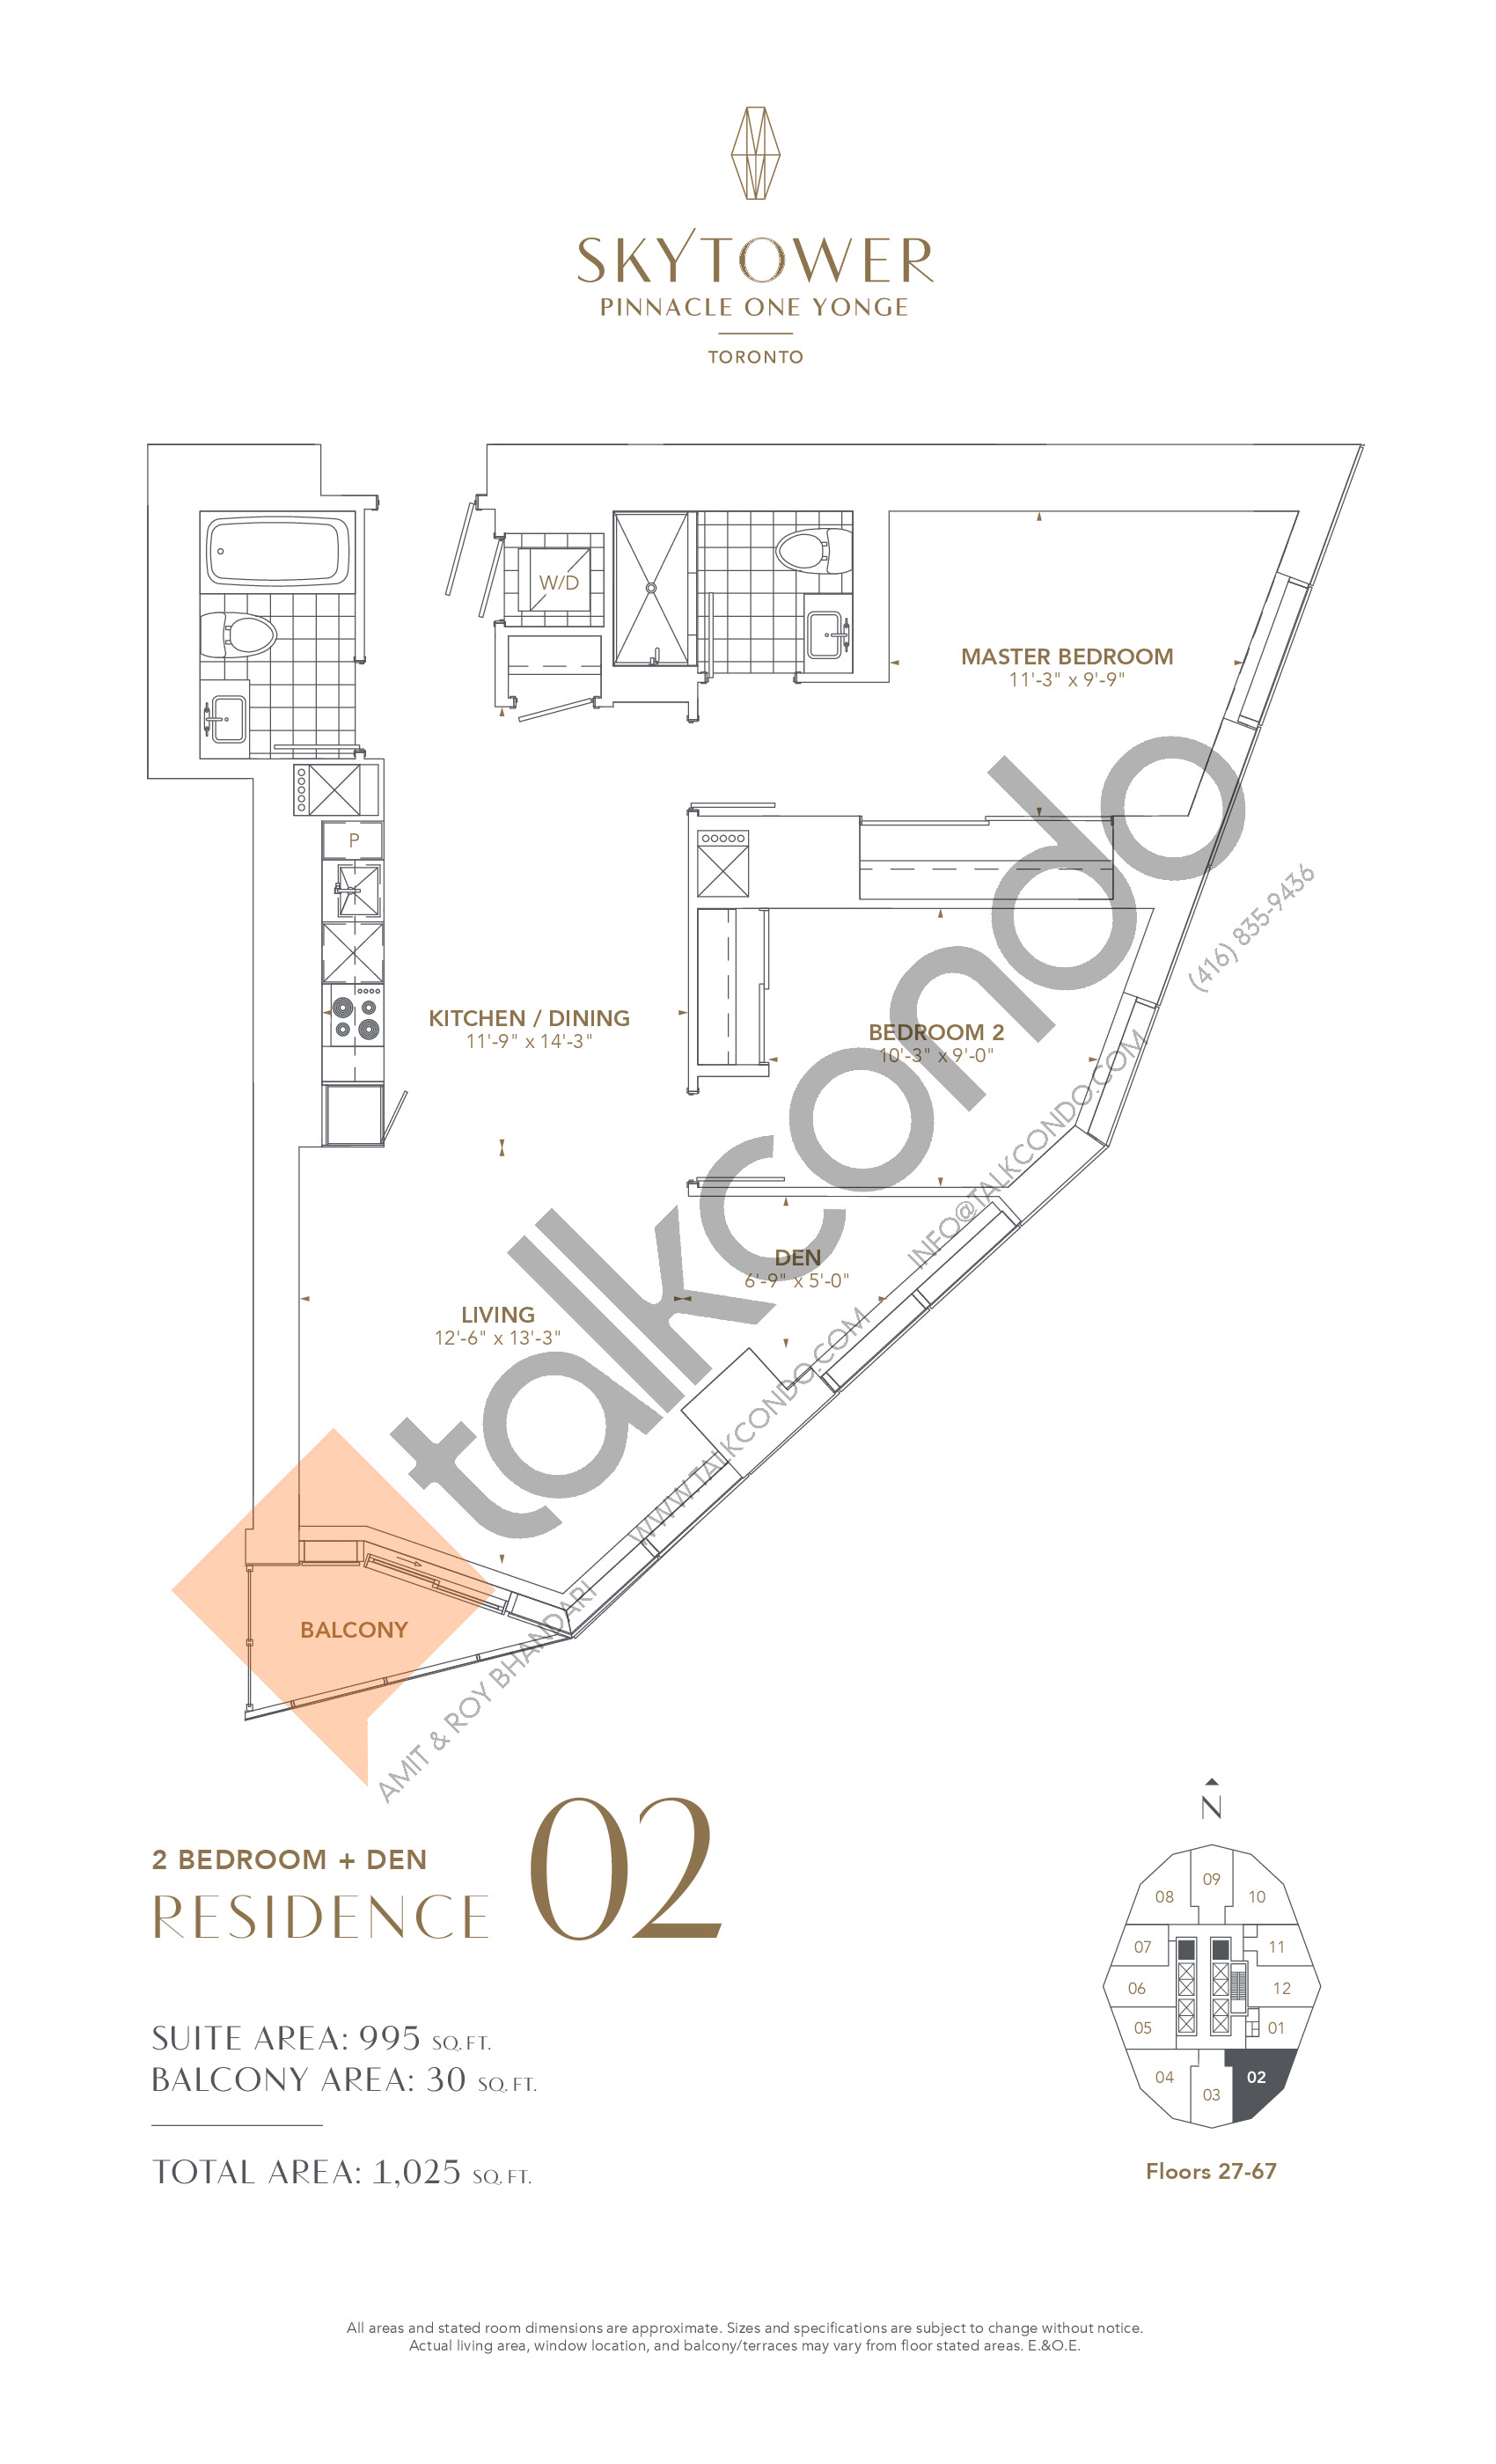 Residence 02 Floor Plan at SkyTower at Pinnacle One Yonge - 995 sq.ft